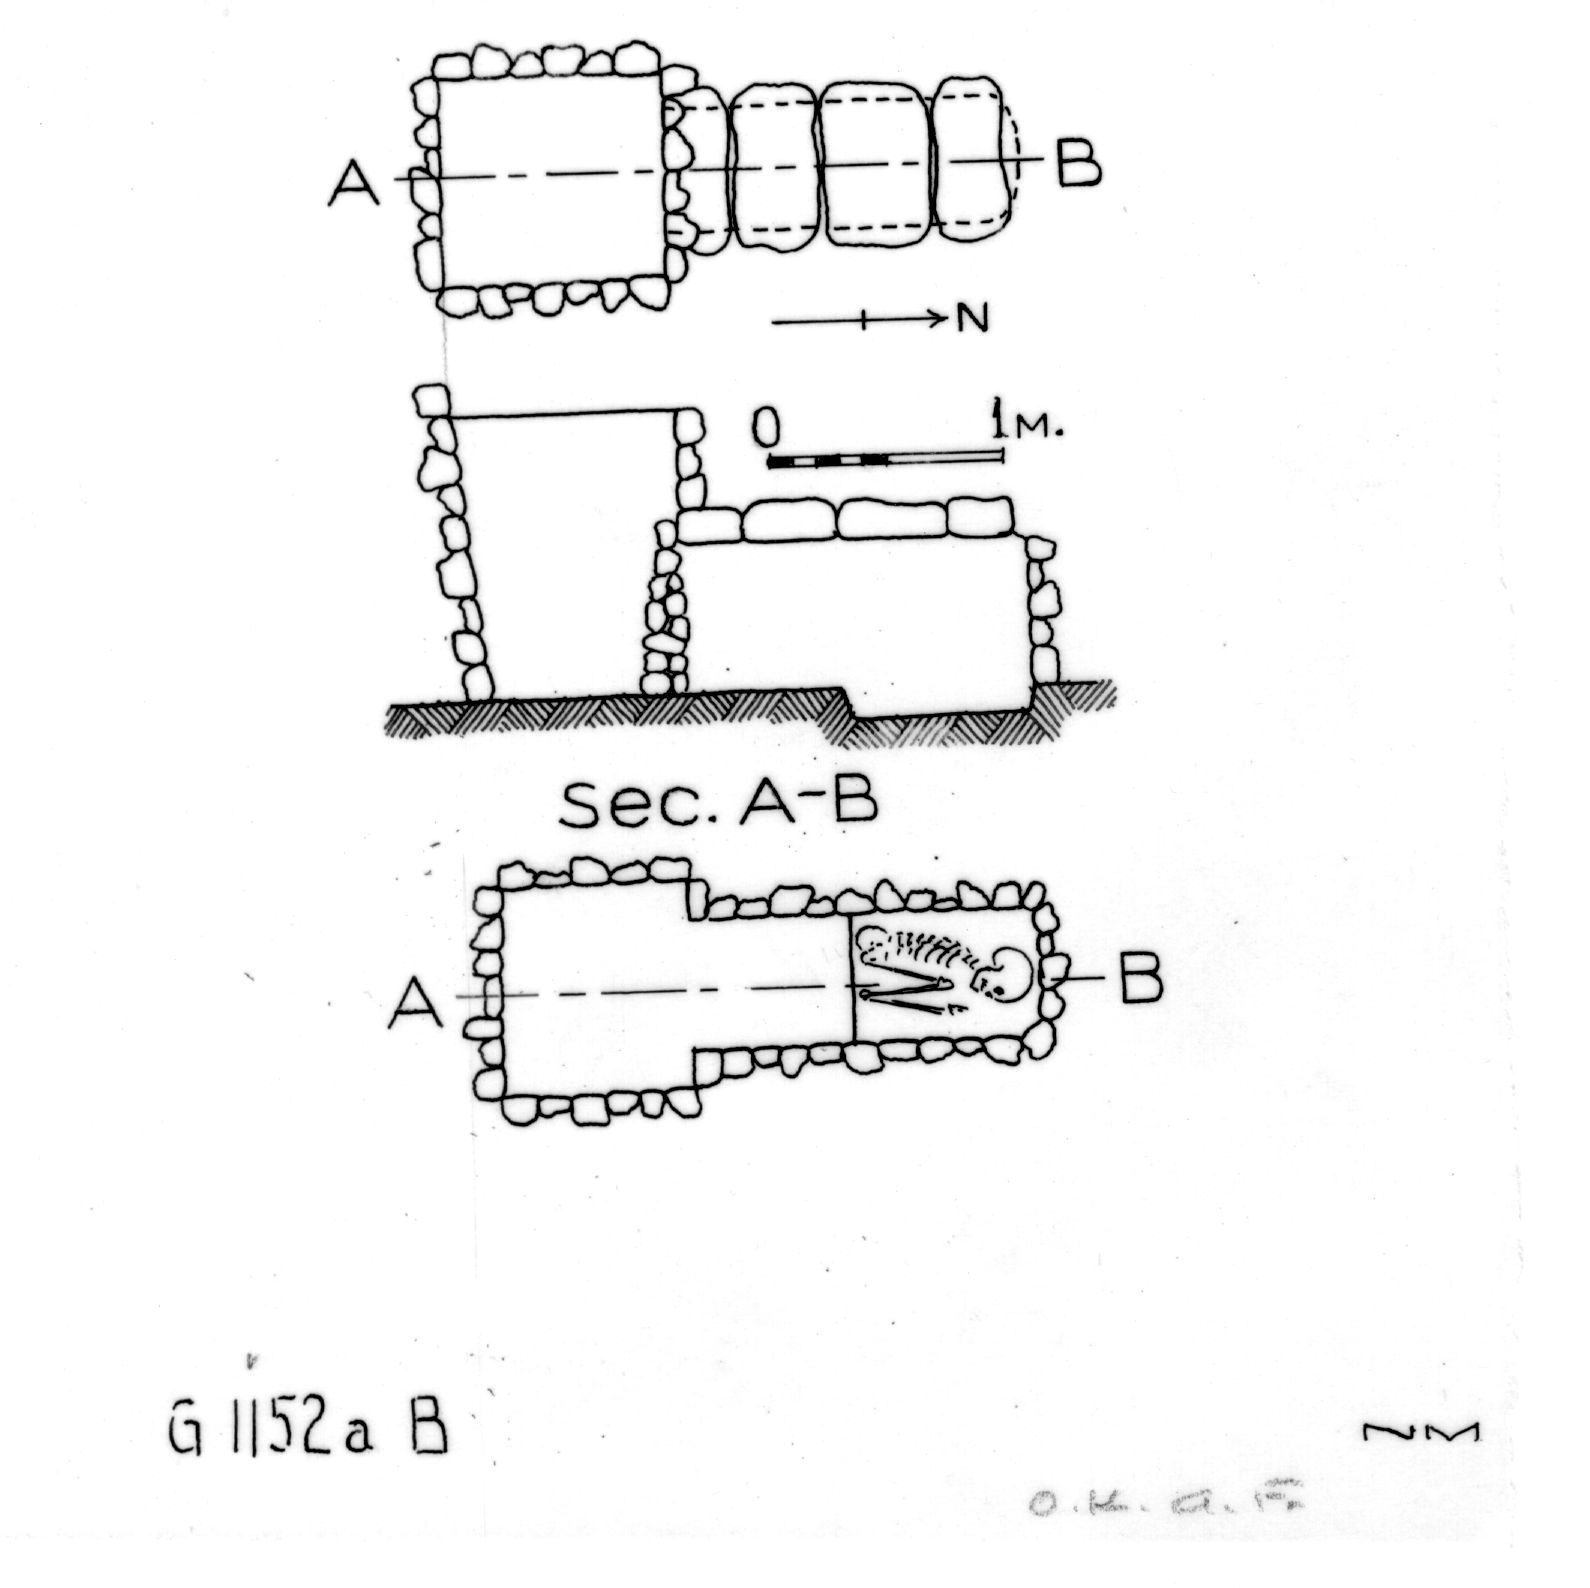 Maps and plans: G 1152a, Shaft B